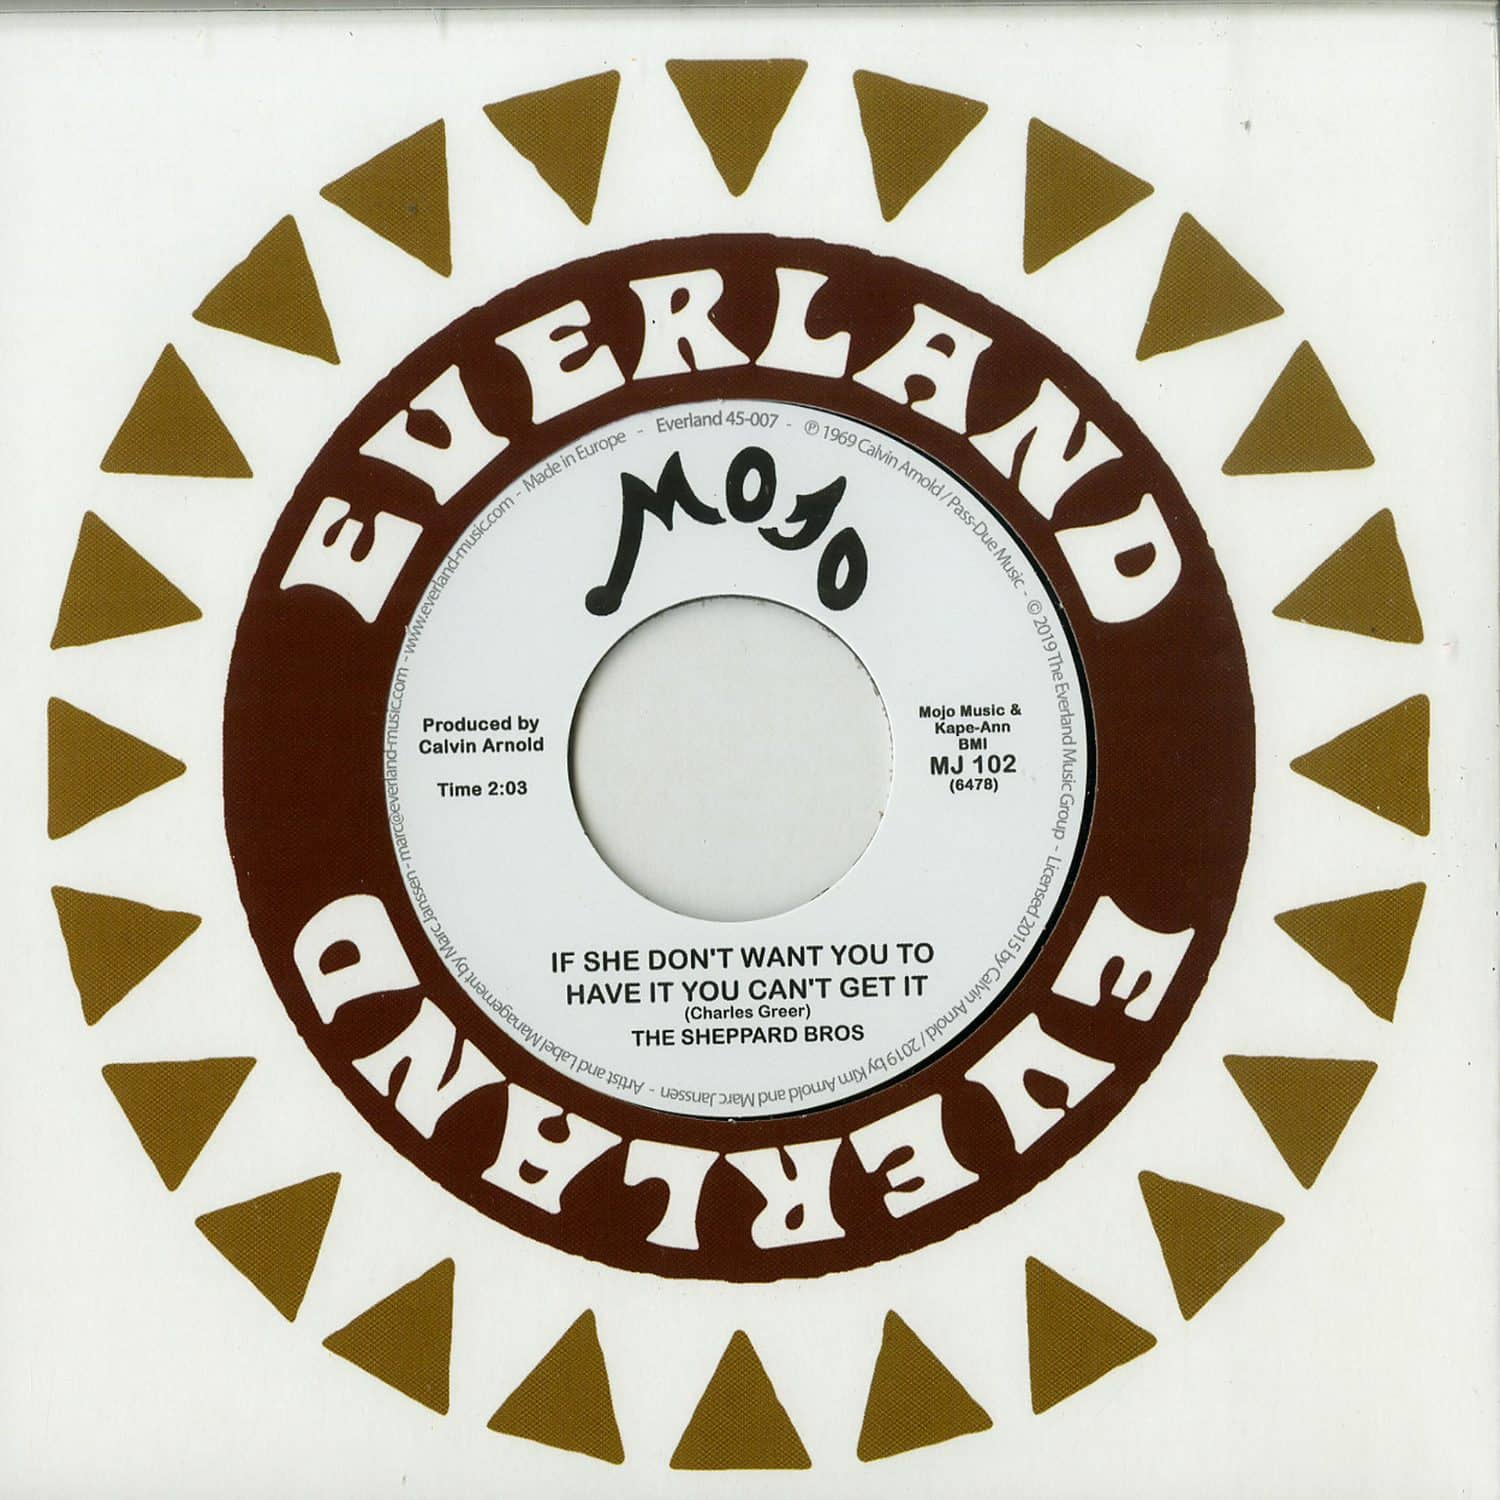 The Sheppard Bros. - IF SHE DONT WANT YOU TO HAVE IT YOU CANT GET IT / MR. FOOL